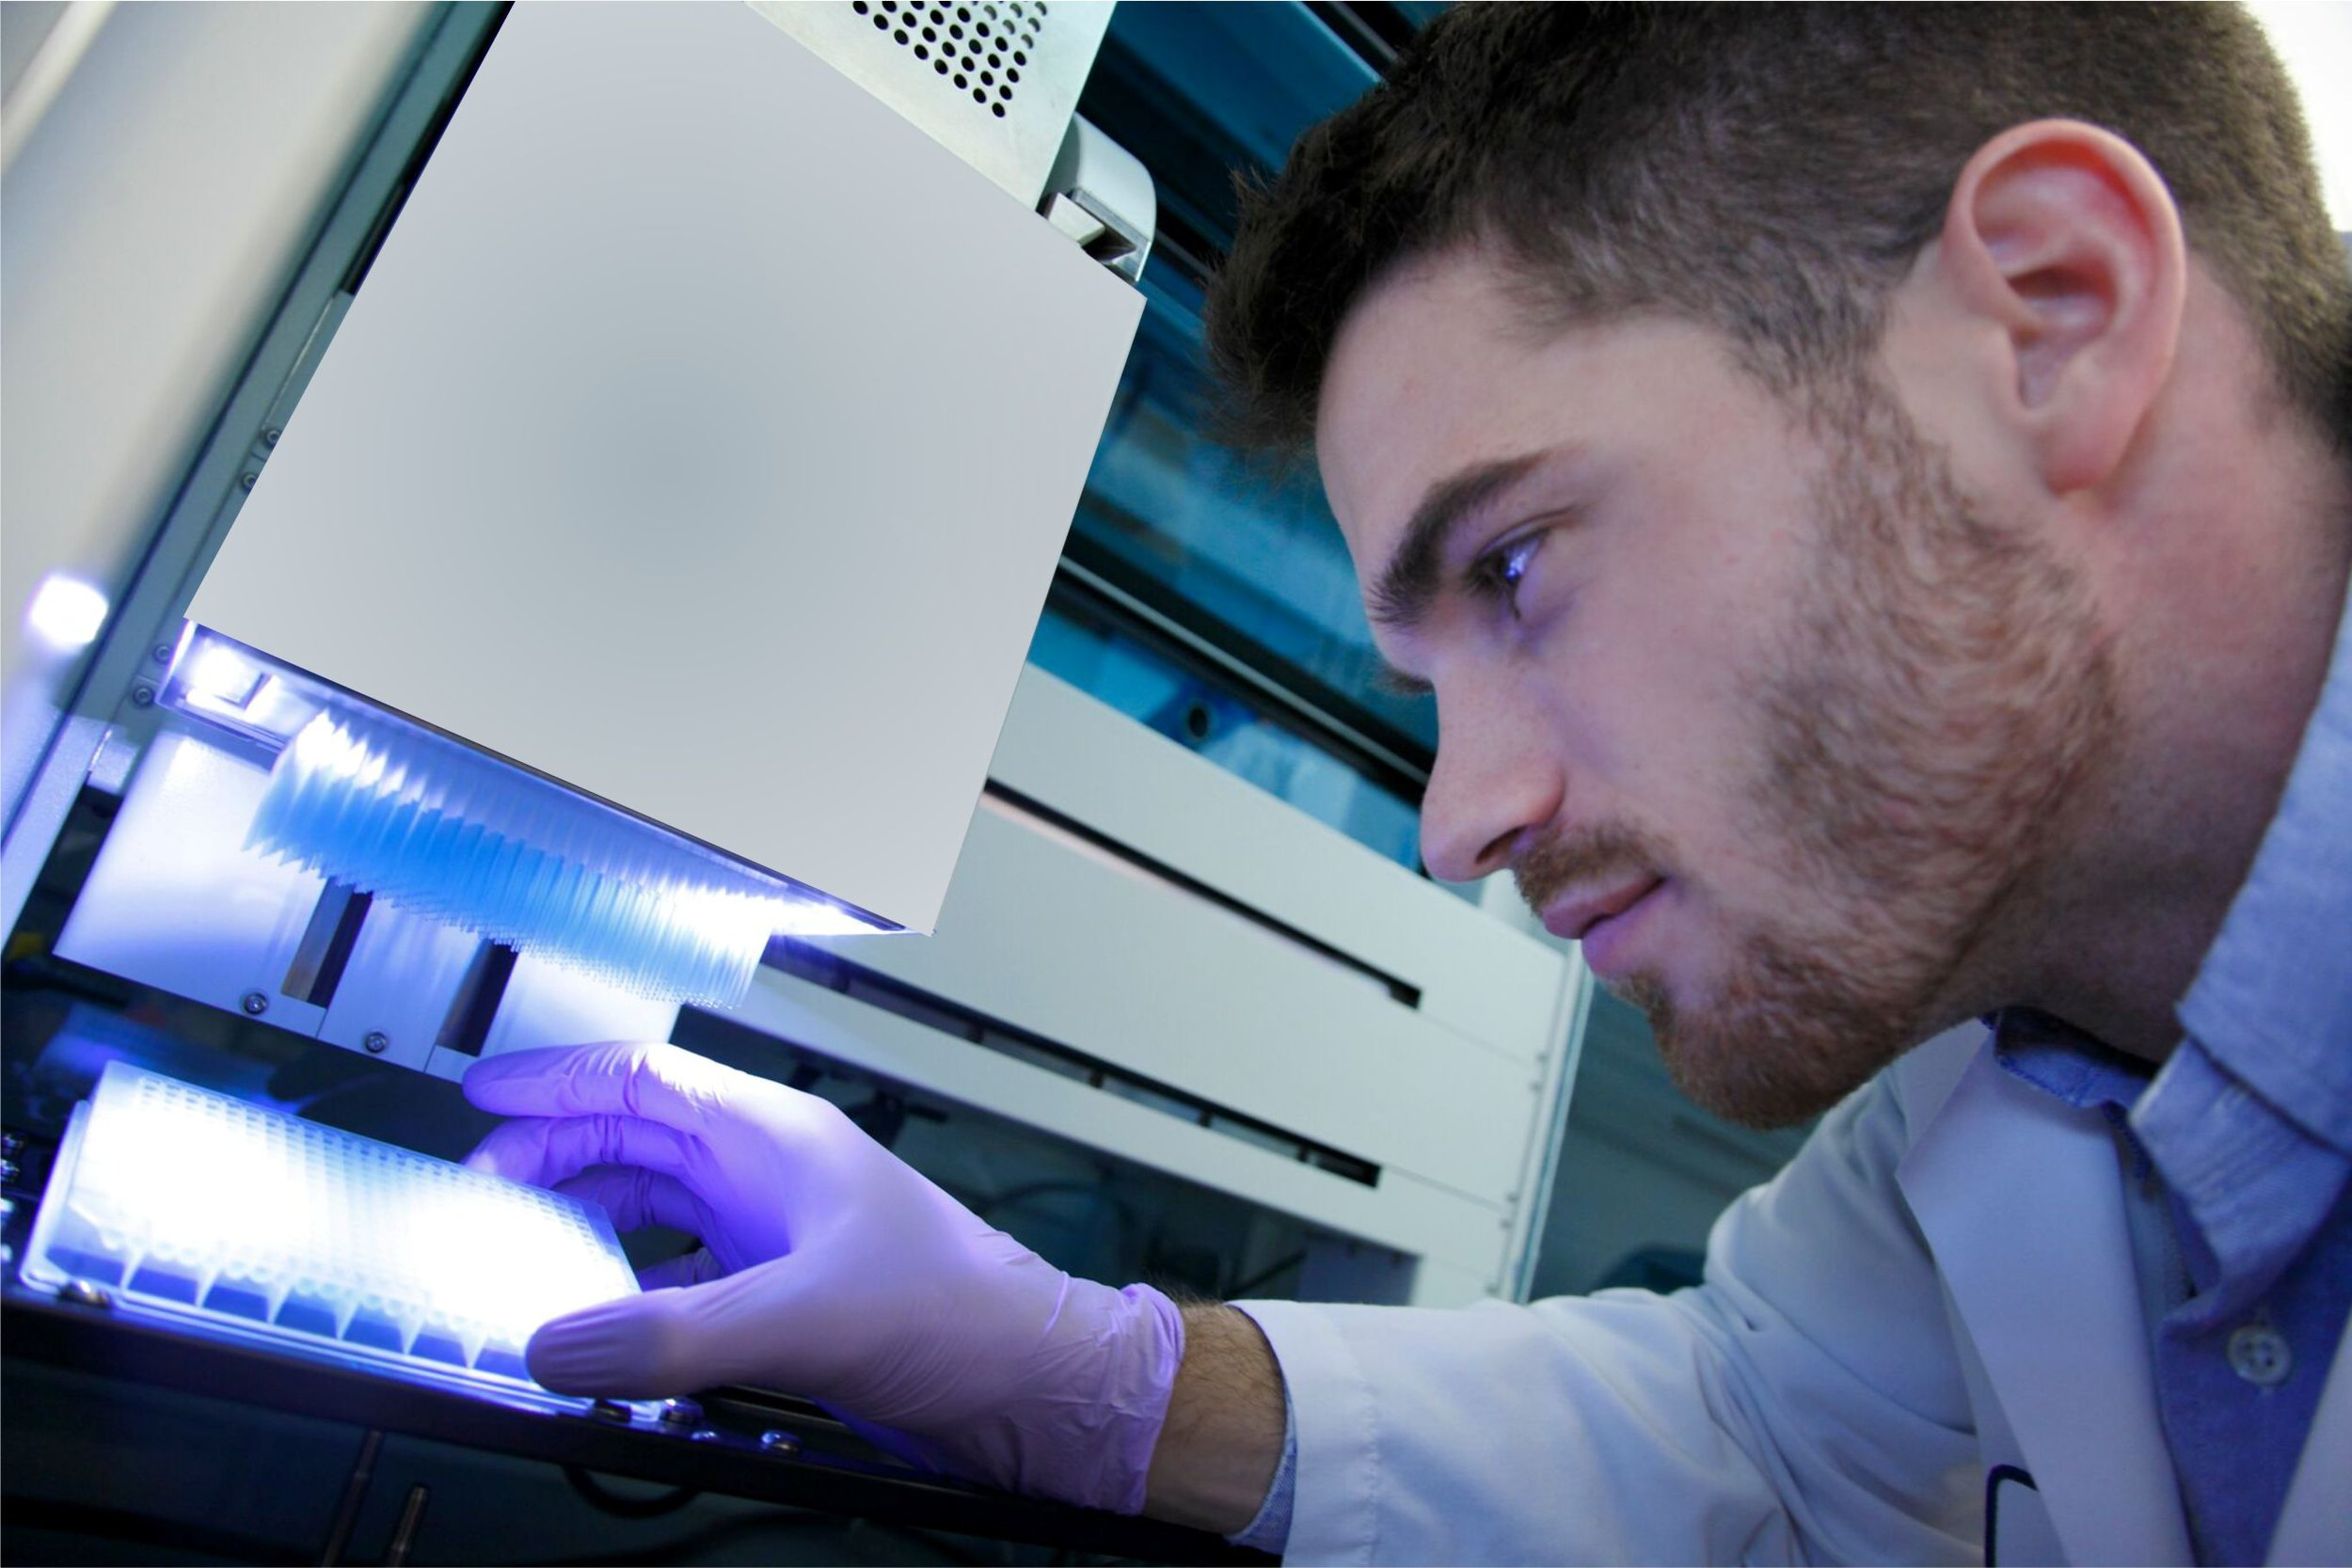 Reid is visually inspecting the quality of the drug dilutions which will be tested on patient-derived ovarian cancer cells. The diluted drugs are added with the aid of robotic liquid-handling equipment, thus minimizing hands-on time and increasing efficiency.